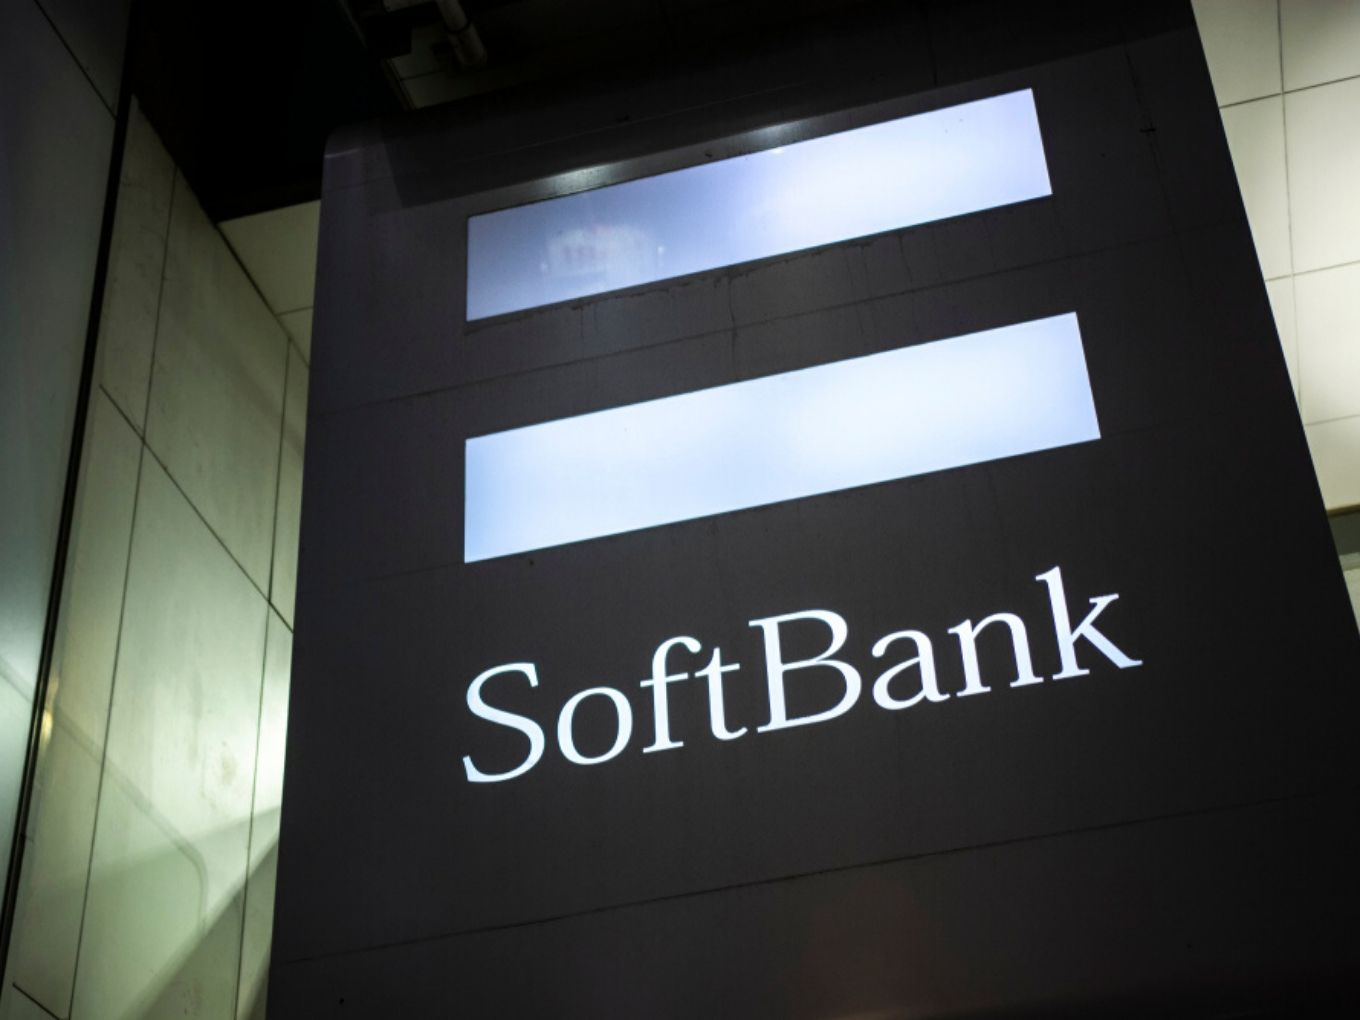 inc42.com - Kritti Bhalla - SoftBank Pumps In $130 Mn Into PolicyBazaar At $1.5 Bn Valuation - Inc42 Media